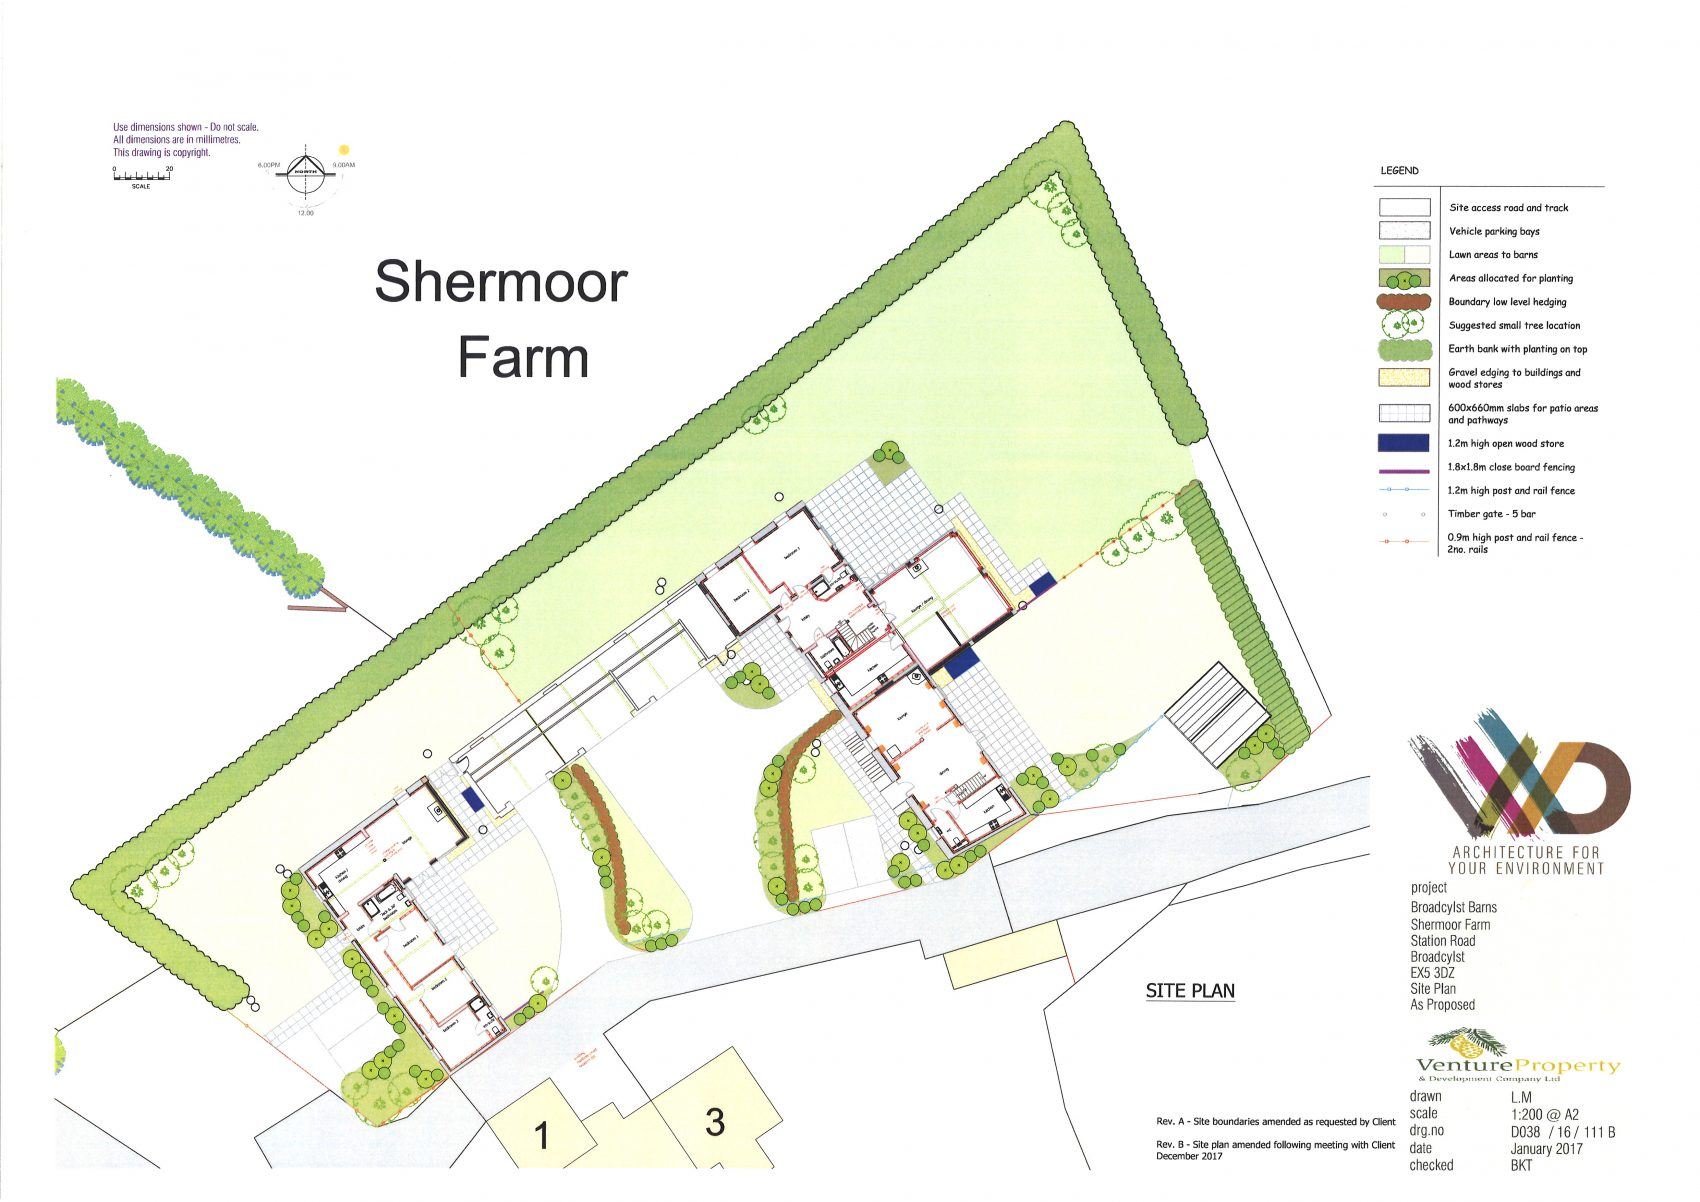 Venture Property - Plot 2 (Threshing Barn) Shermoor Farm